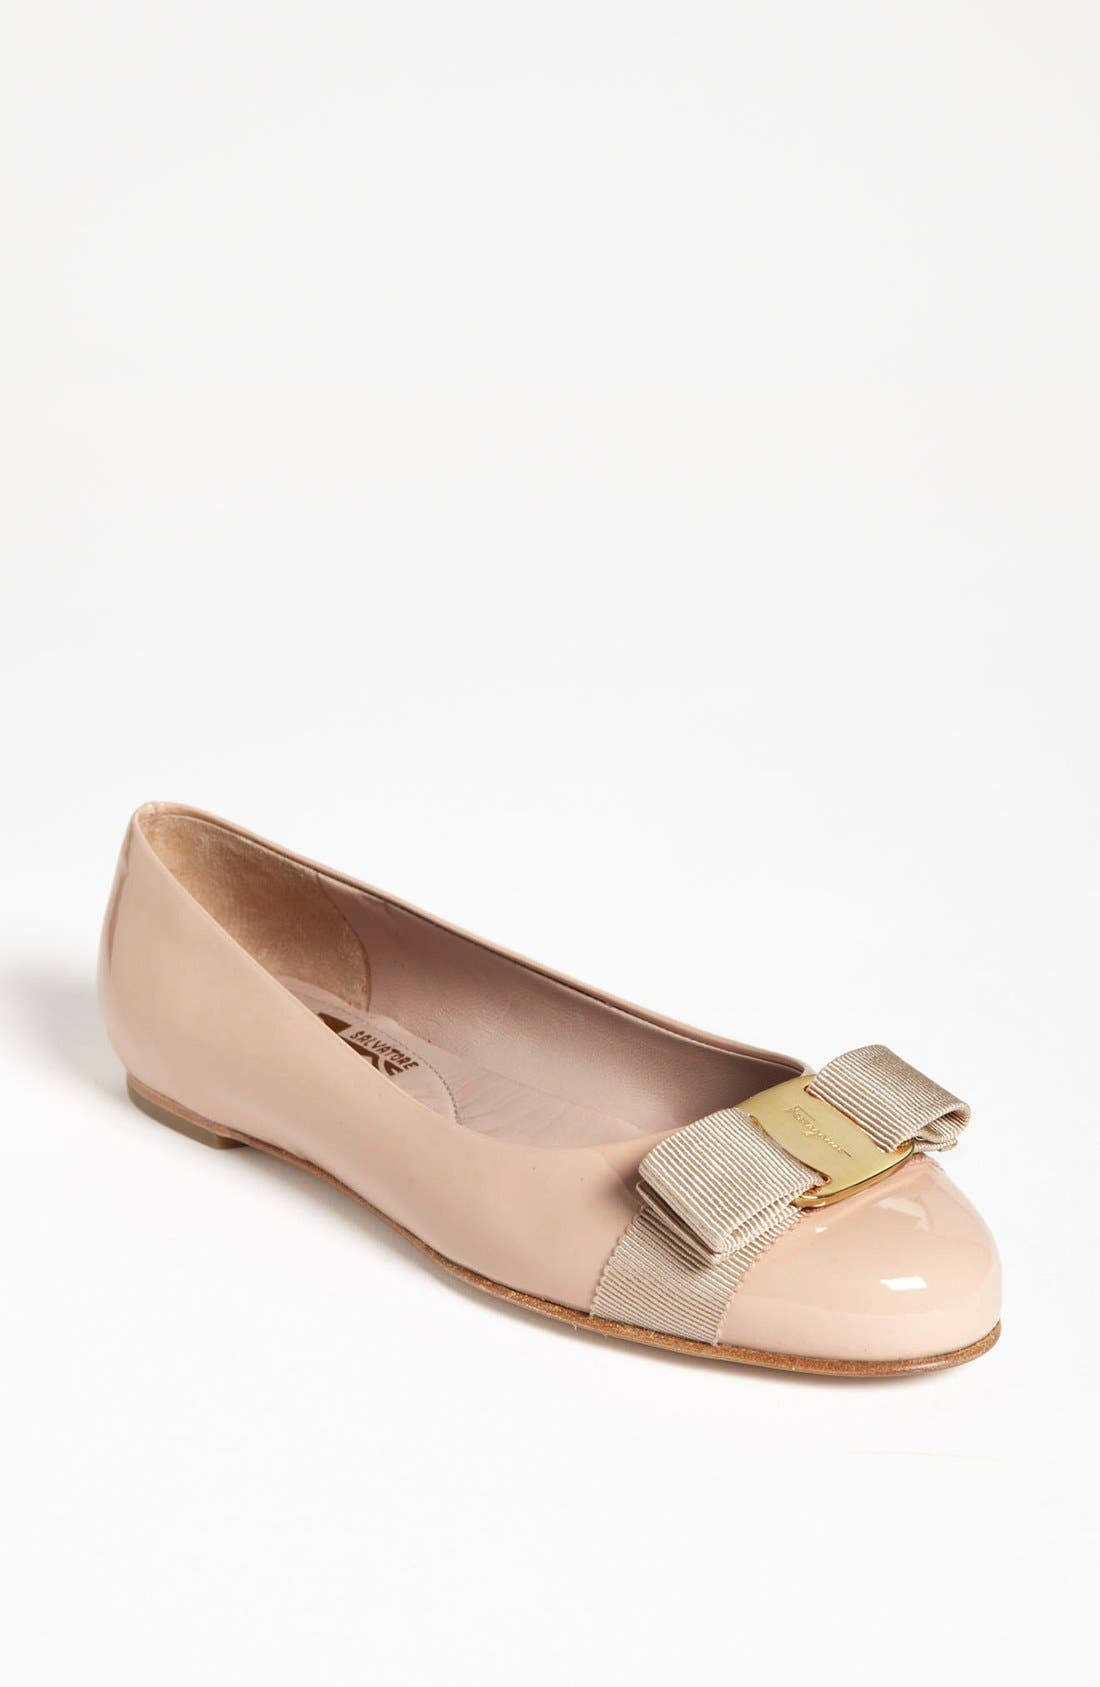 Alternate Image 1 Selected - Salvatore Ferragamo Varina Leather Flat (Women)